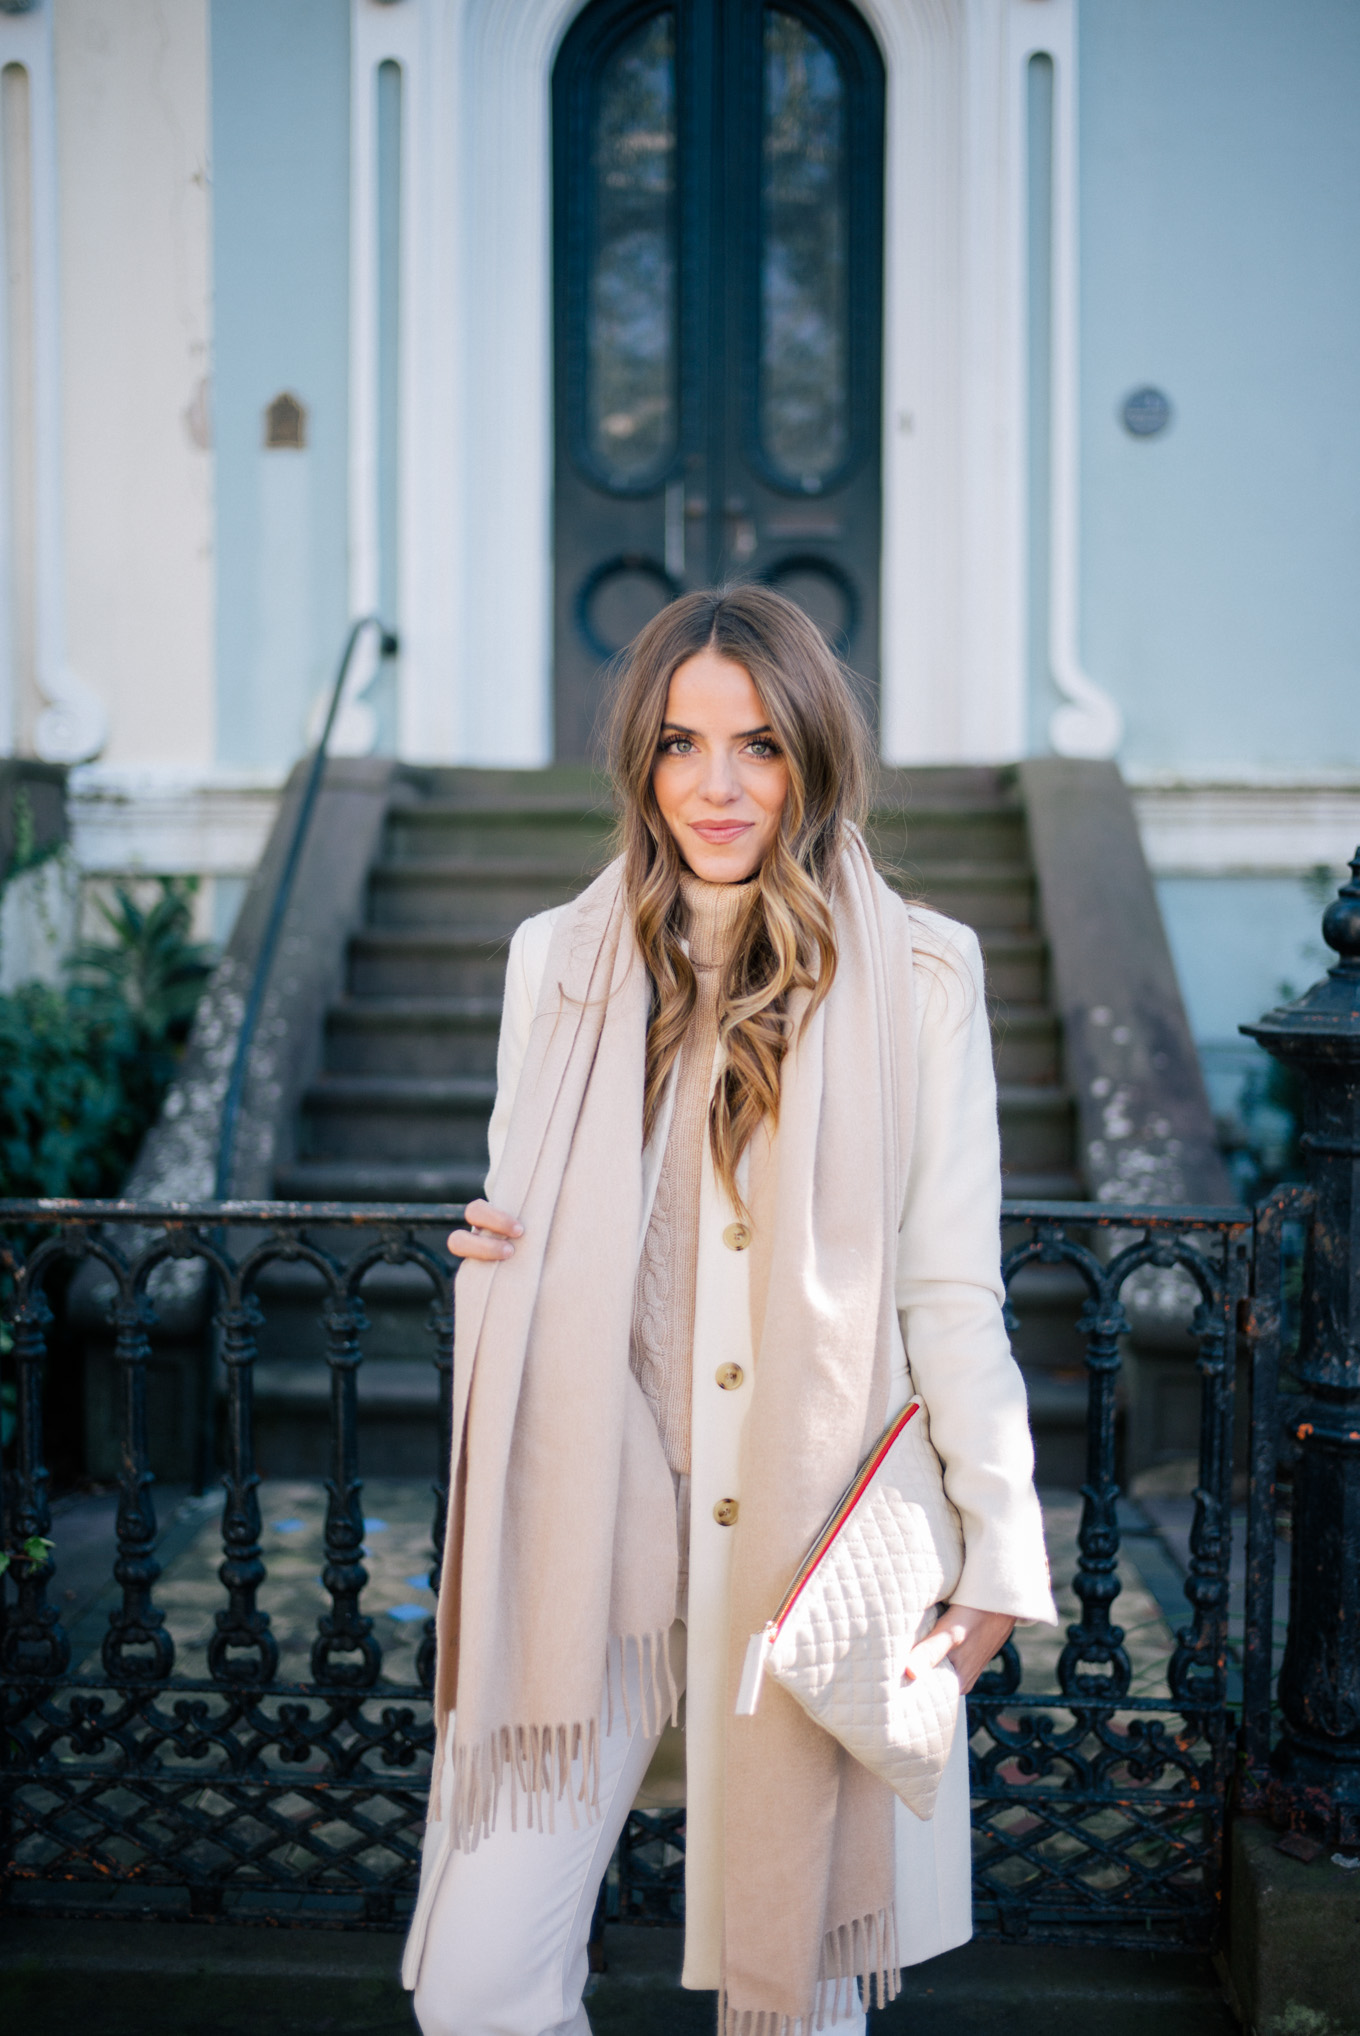 gmg-winter-white-and-cream-outfit-1003440